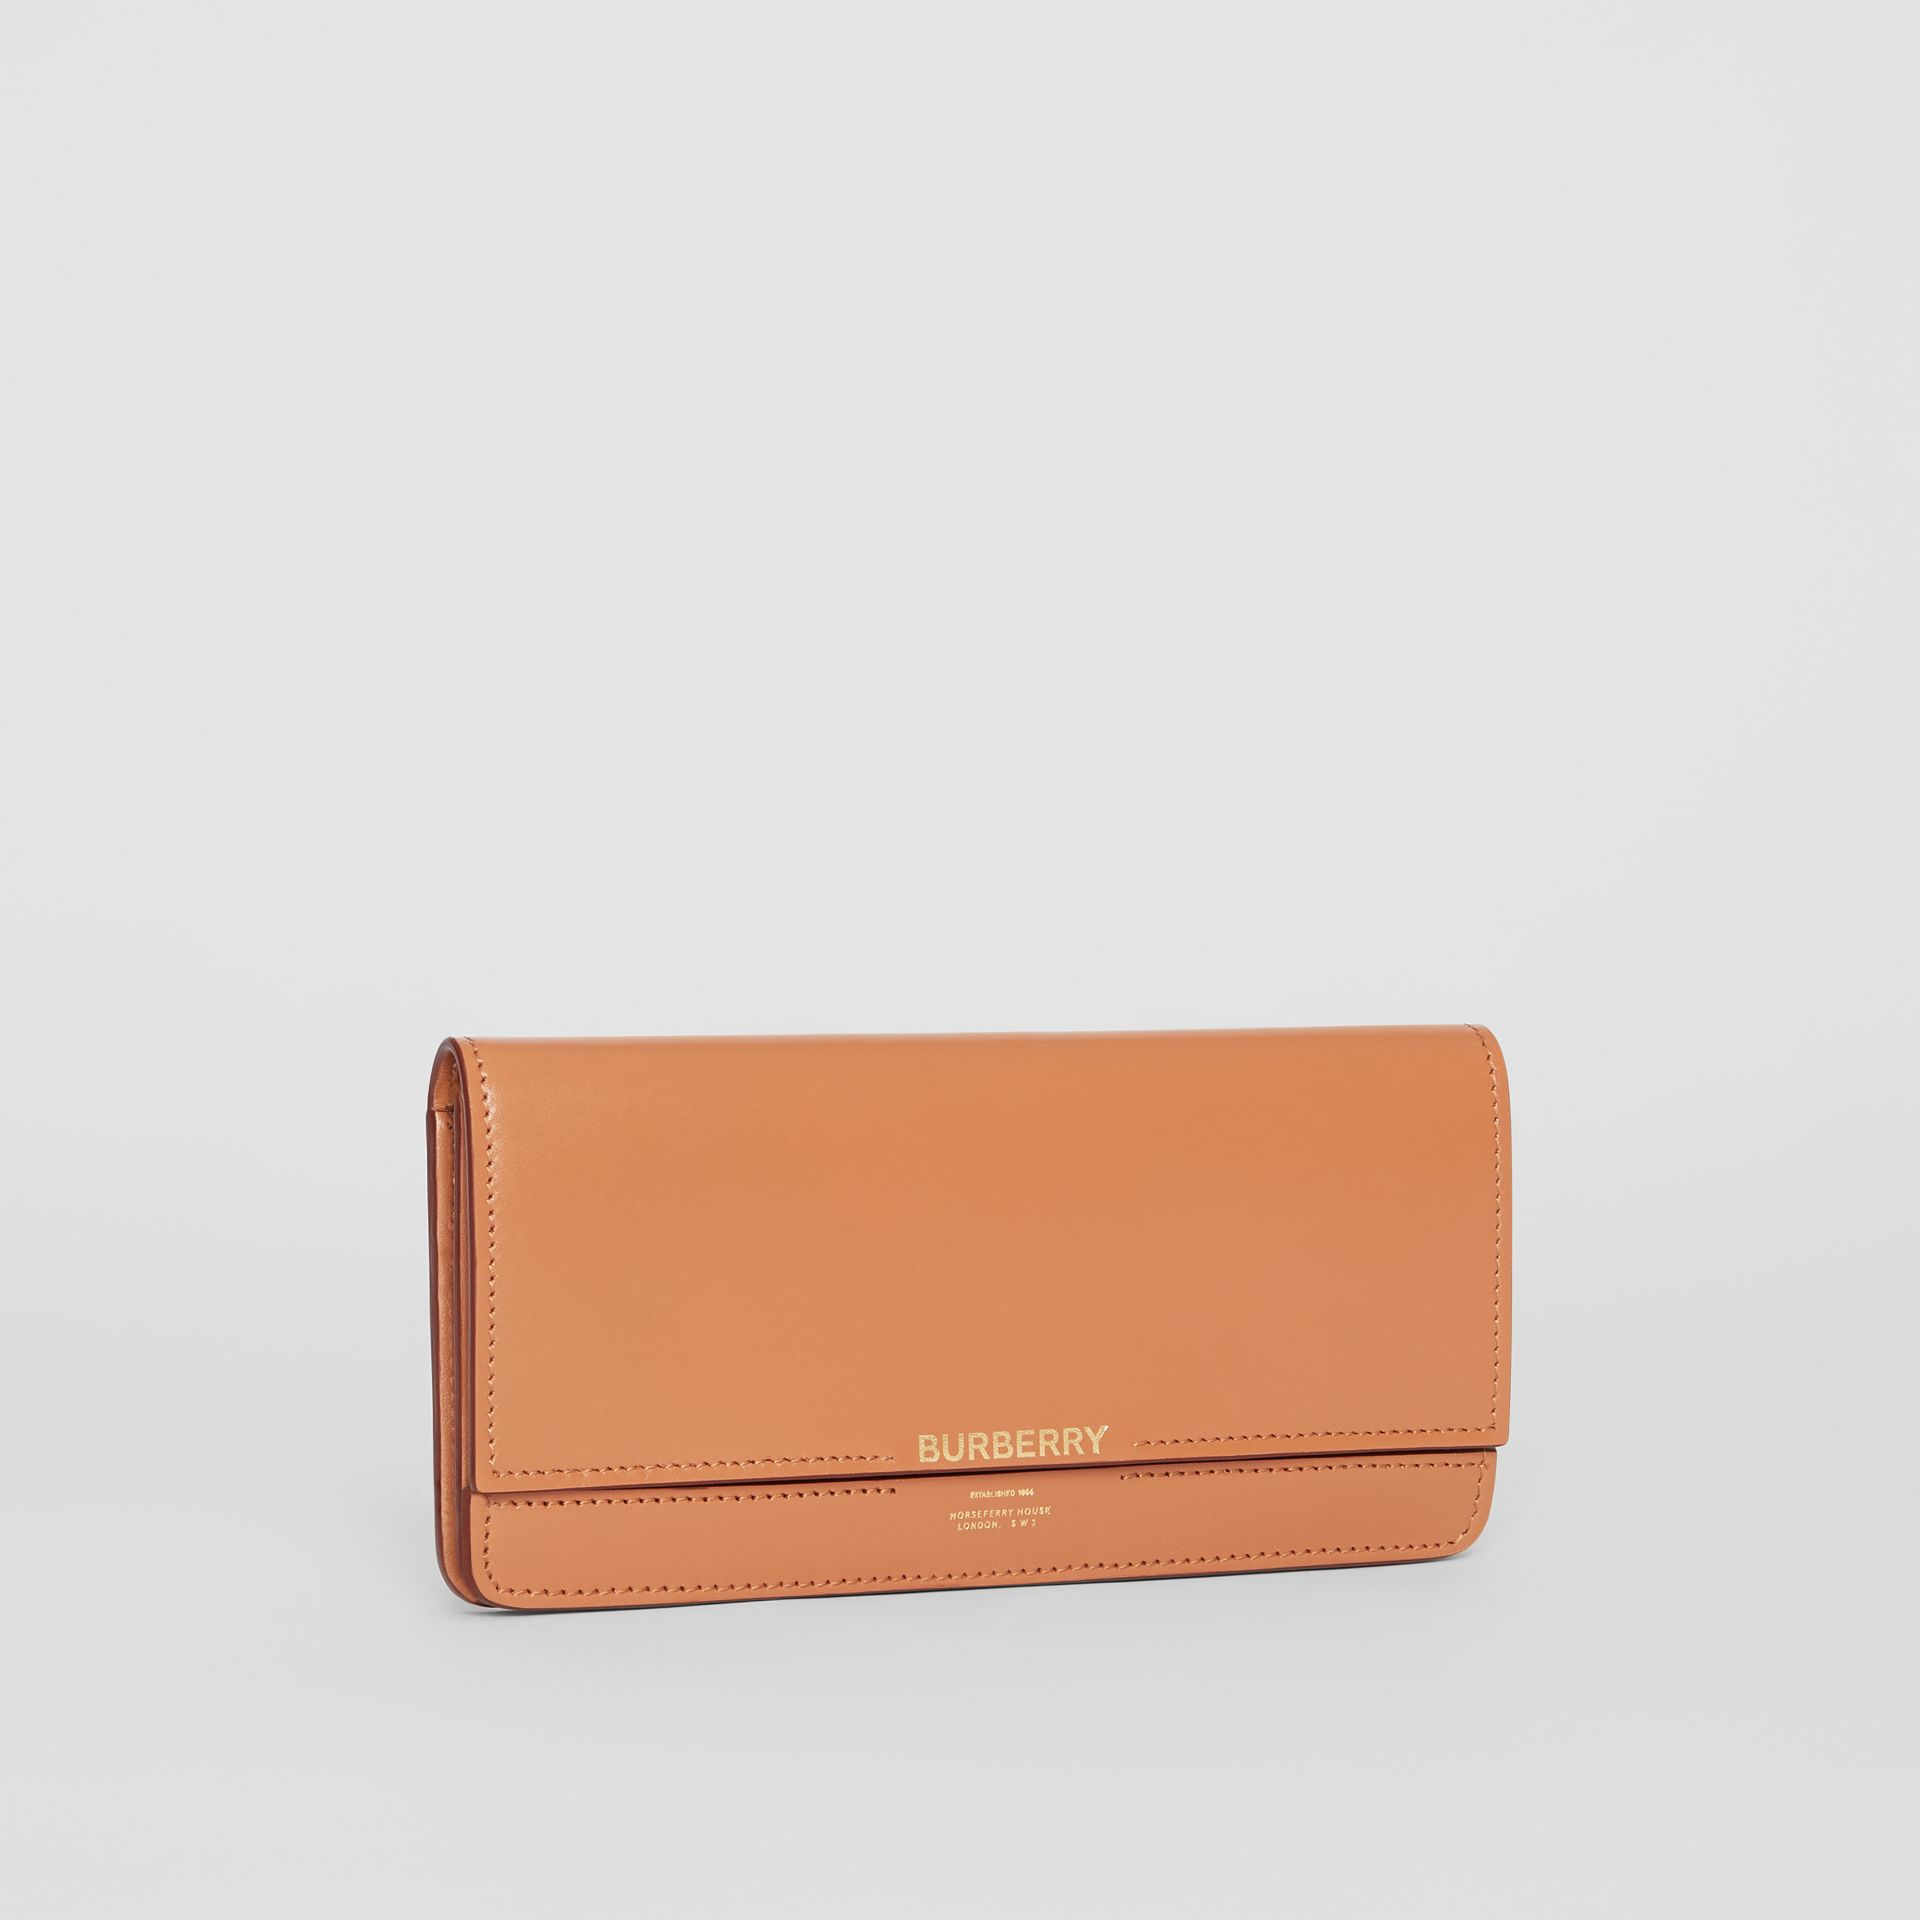 Horseferry Embossed Leather Continental Wallet in Nutmeg - Women | Burberry United Kingdom - gallery image 4